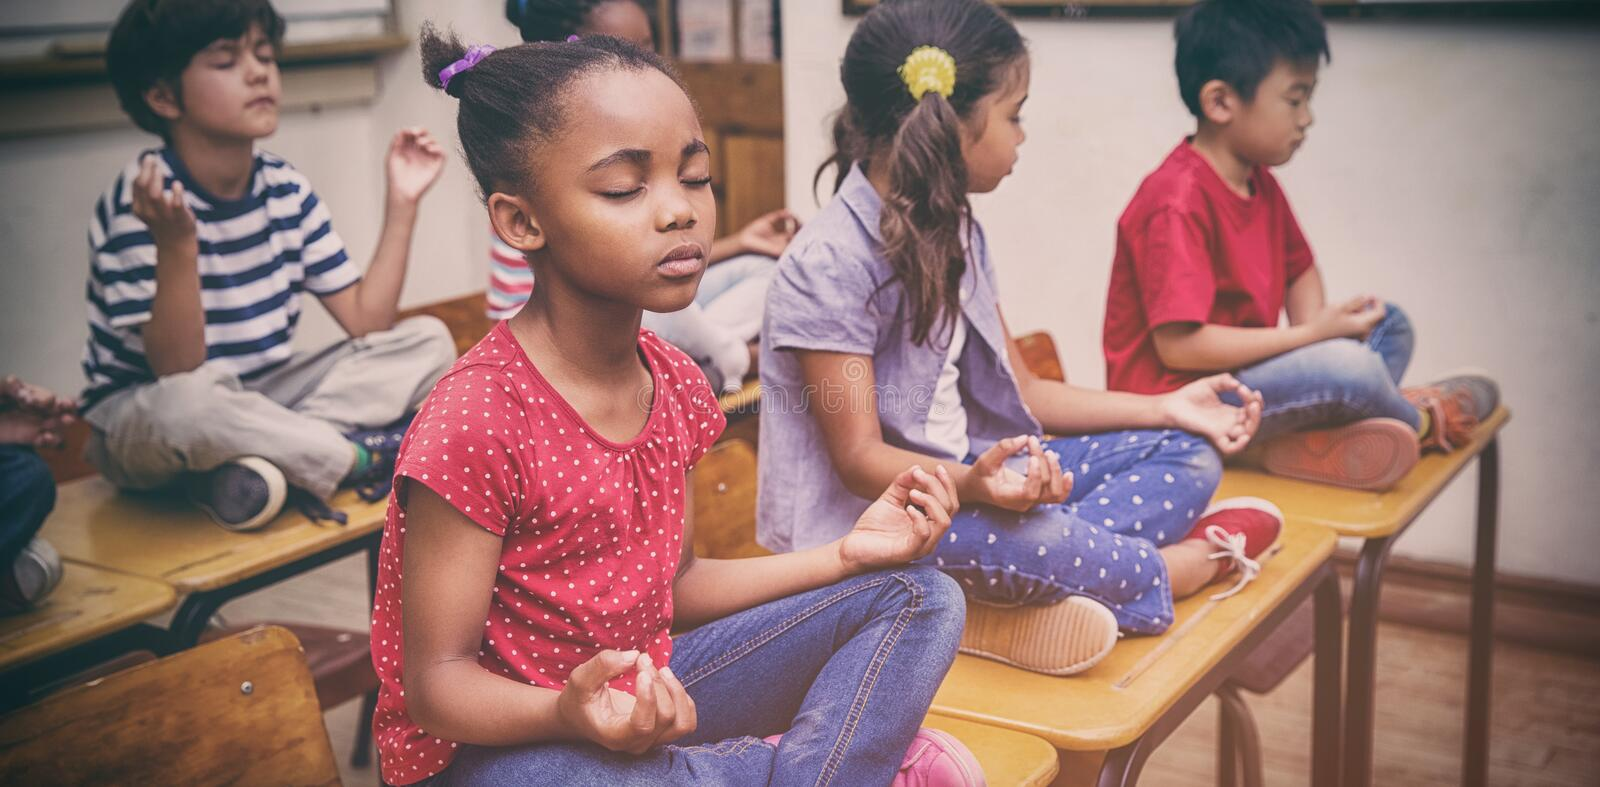 Pupils meditating in lotus position on desk in classroom royalty free stock photography